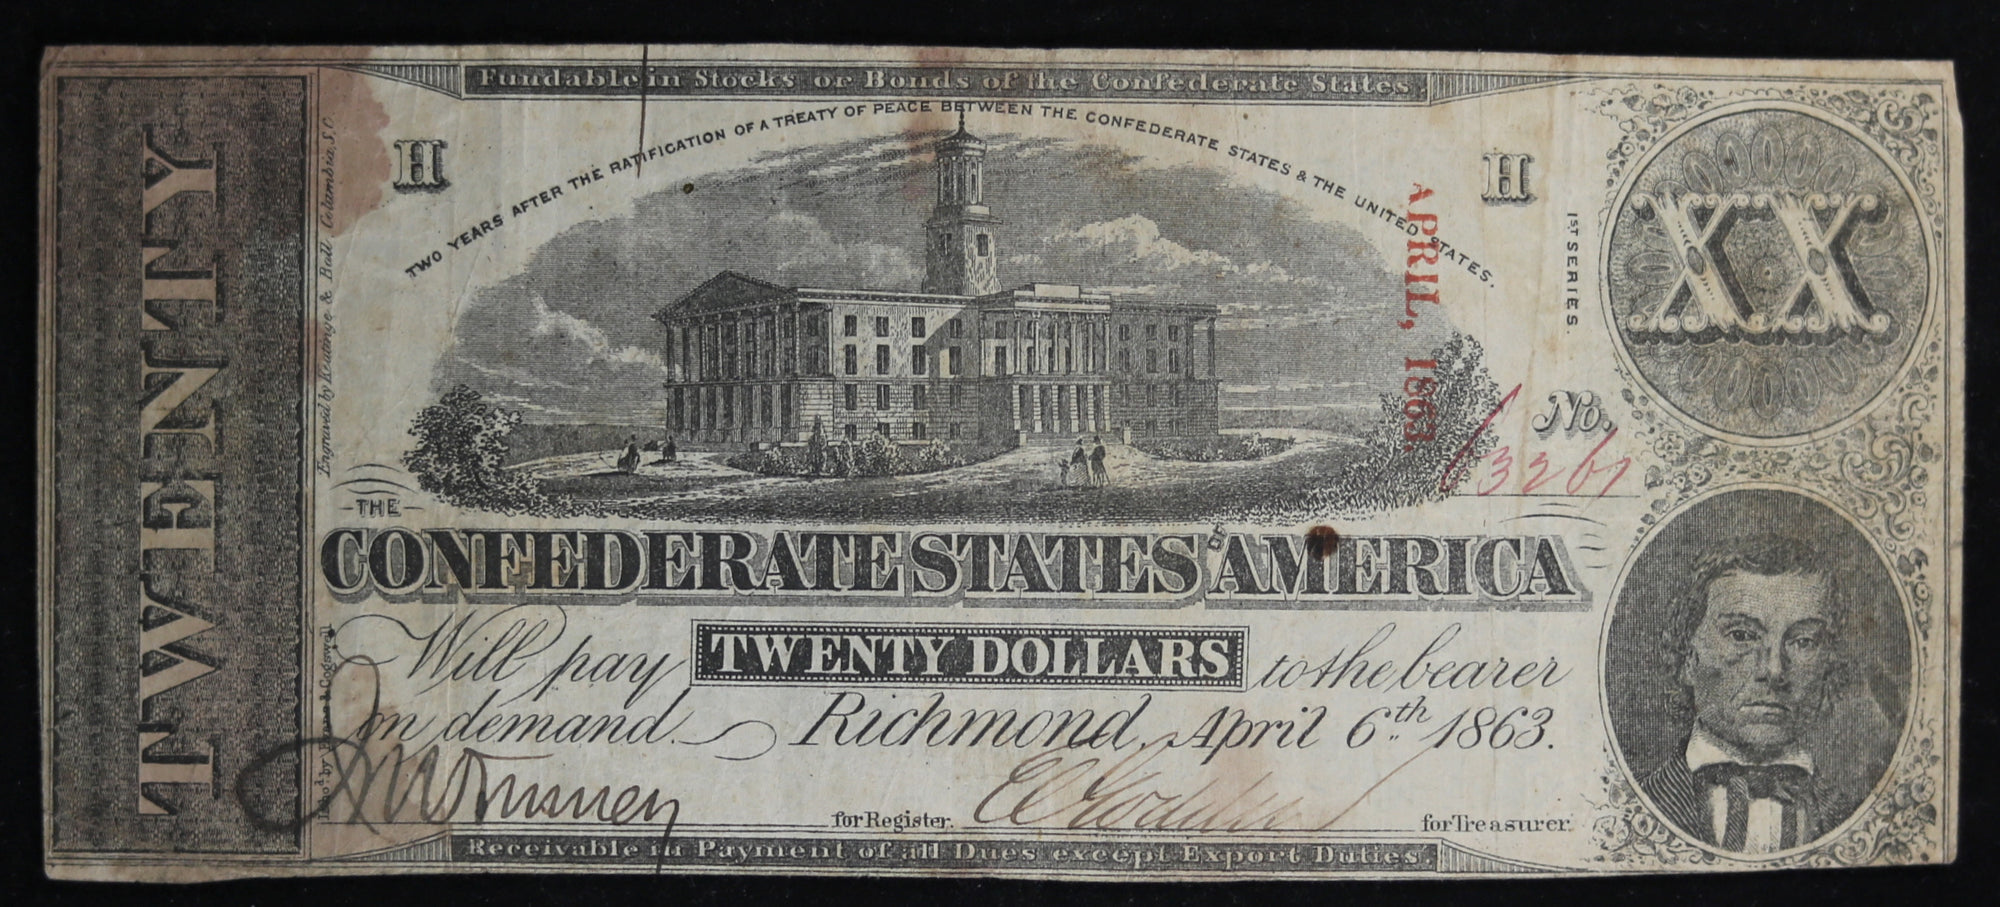 1863 Confederate States of America $20 Richmond Virginia